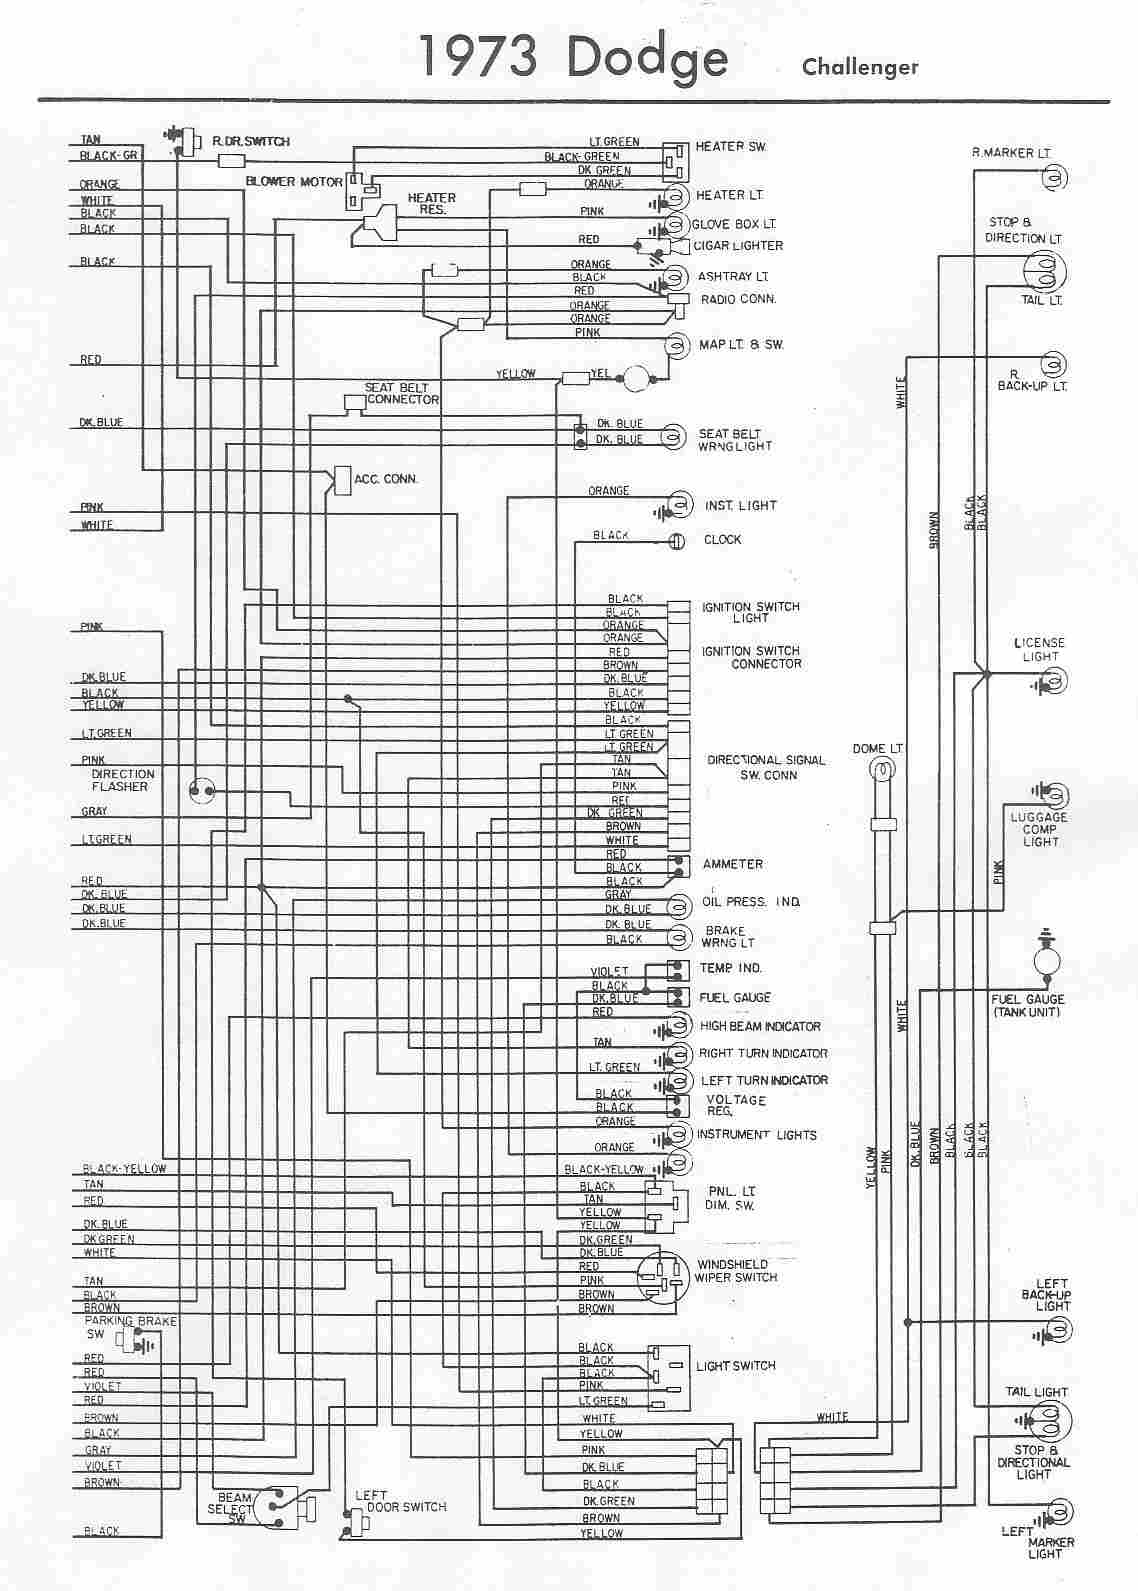 hight resolution of dodge motorhome wiring diagram circuit wiring and diagram hub u bdnewsmix com dodge jpg 1138x1591 1976